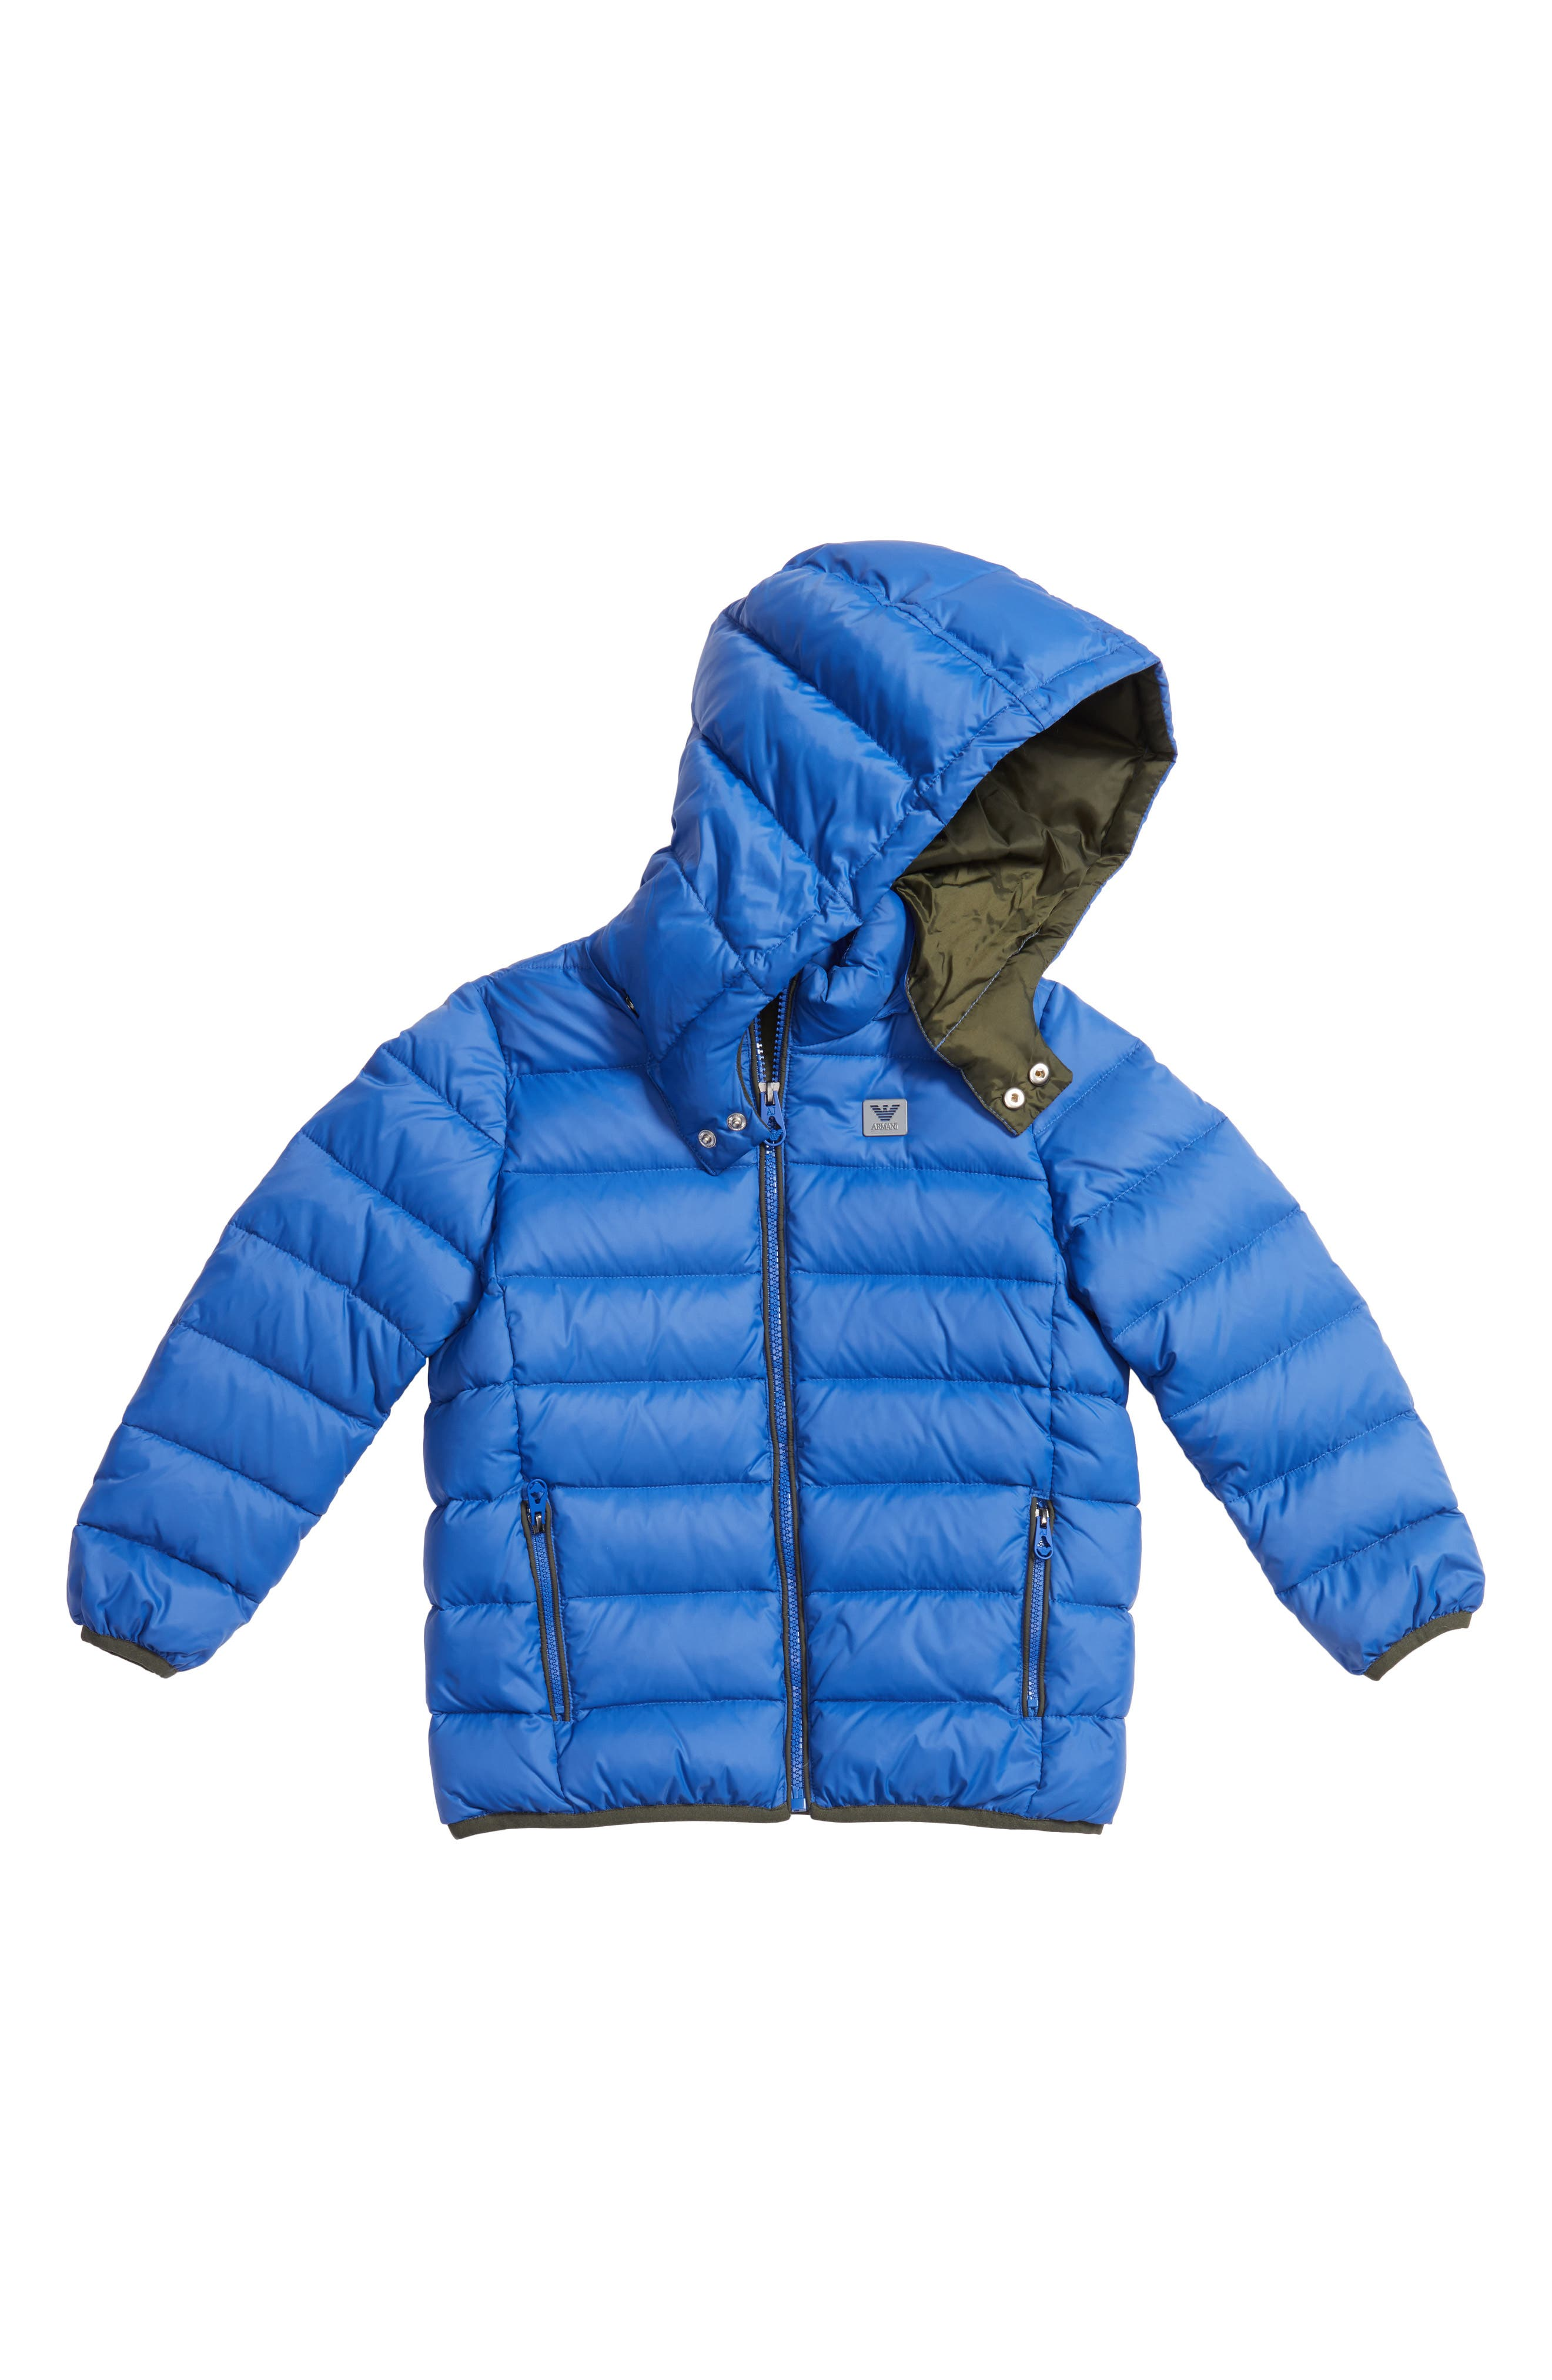 Water Resistant Hooded Down Jacket,                             Main thumbnail 1, color,                             Blue